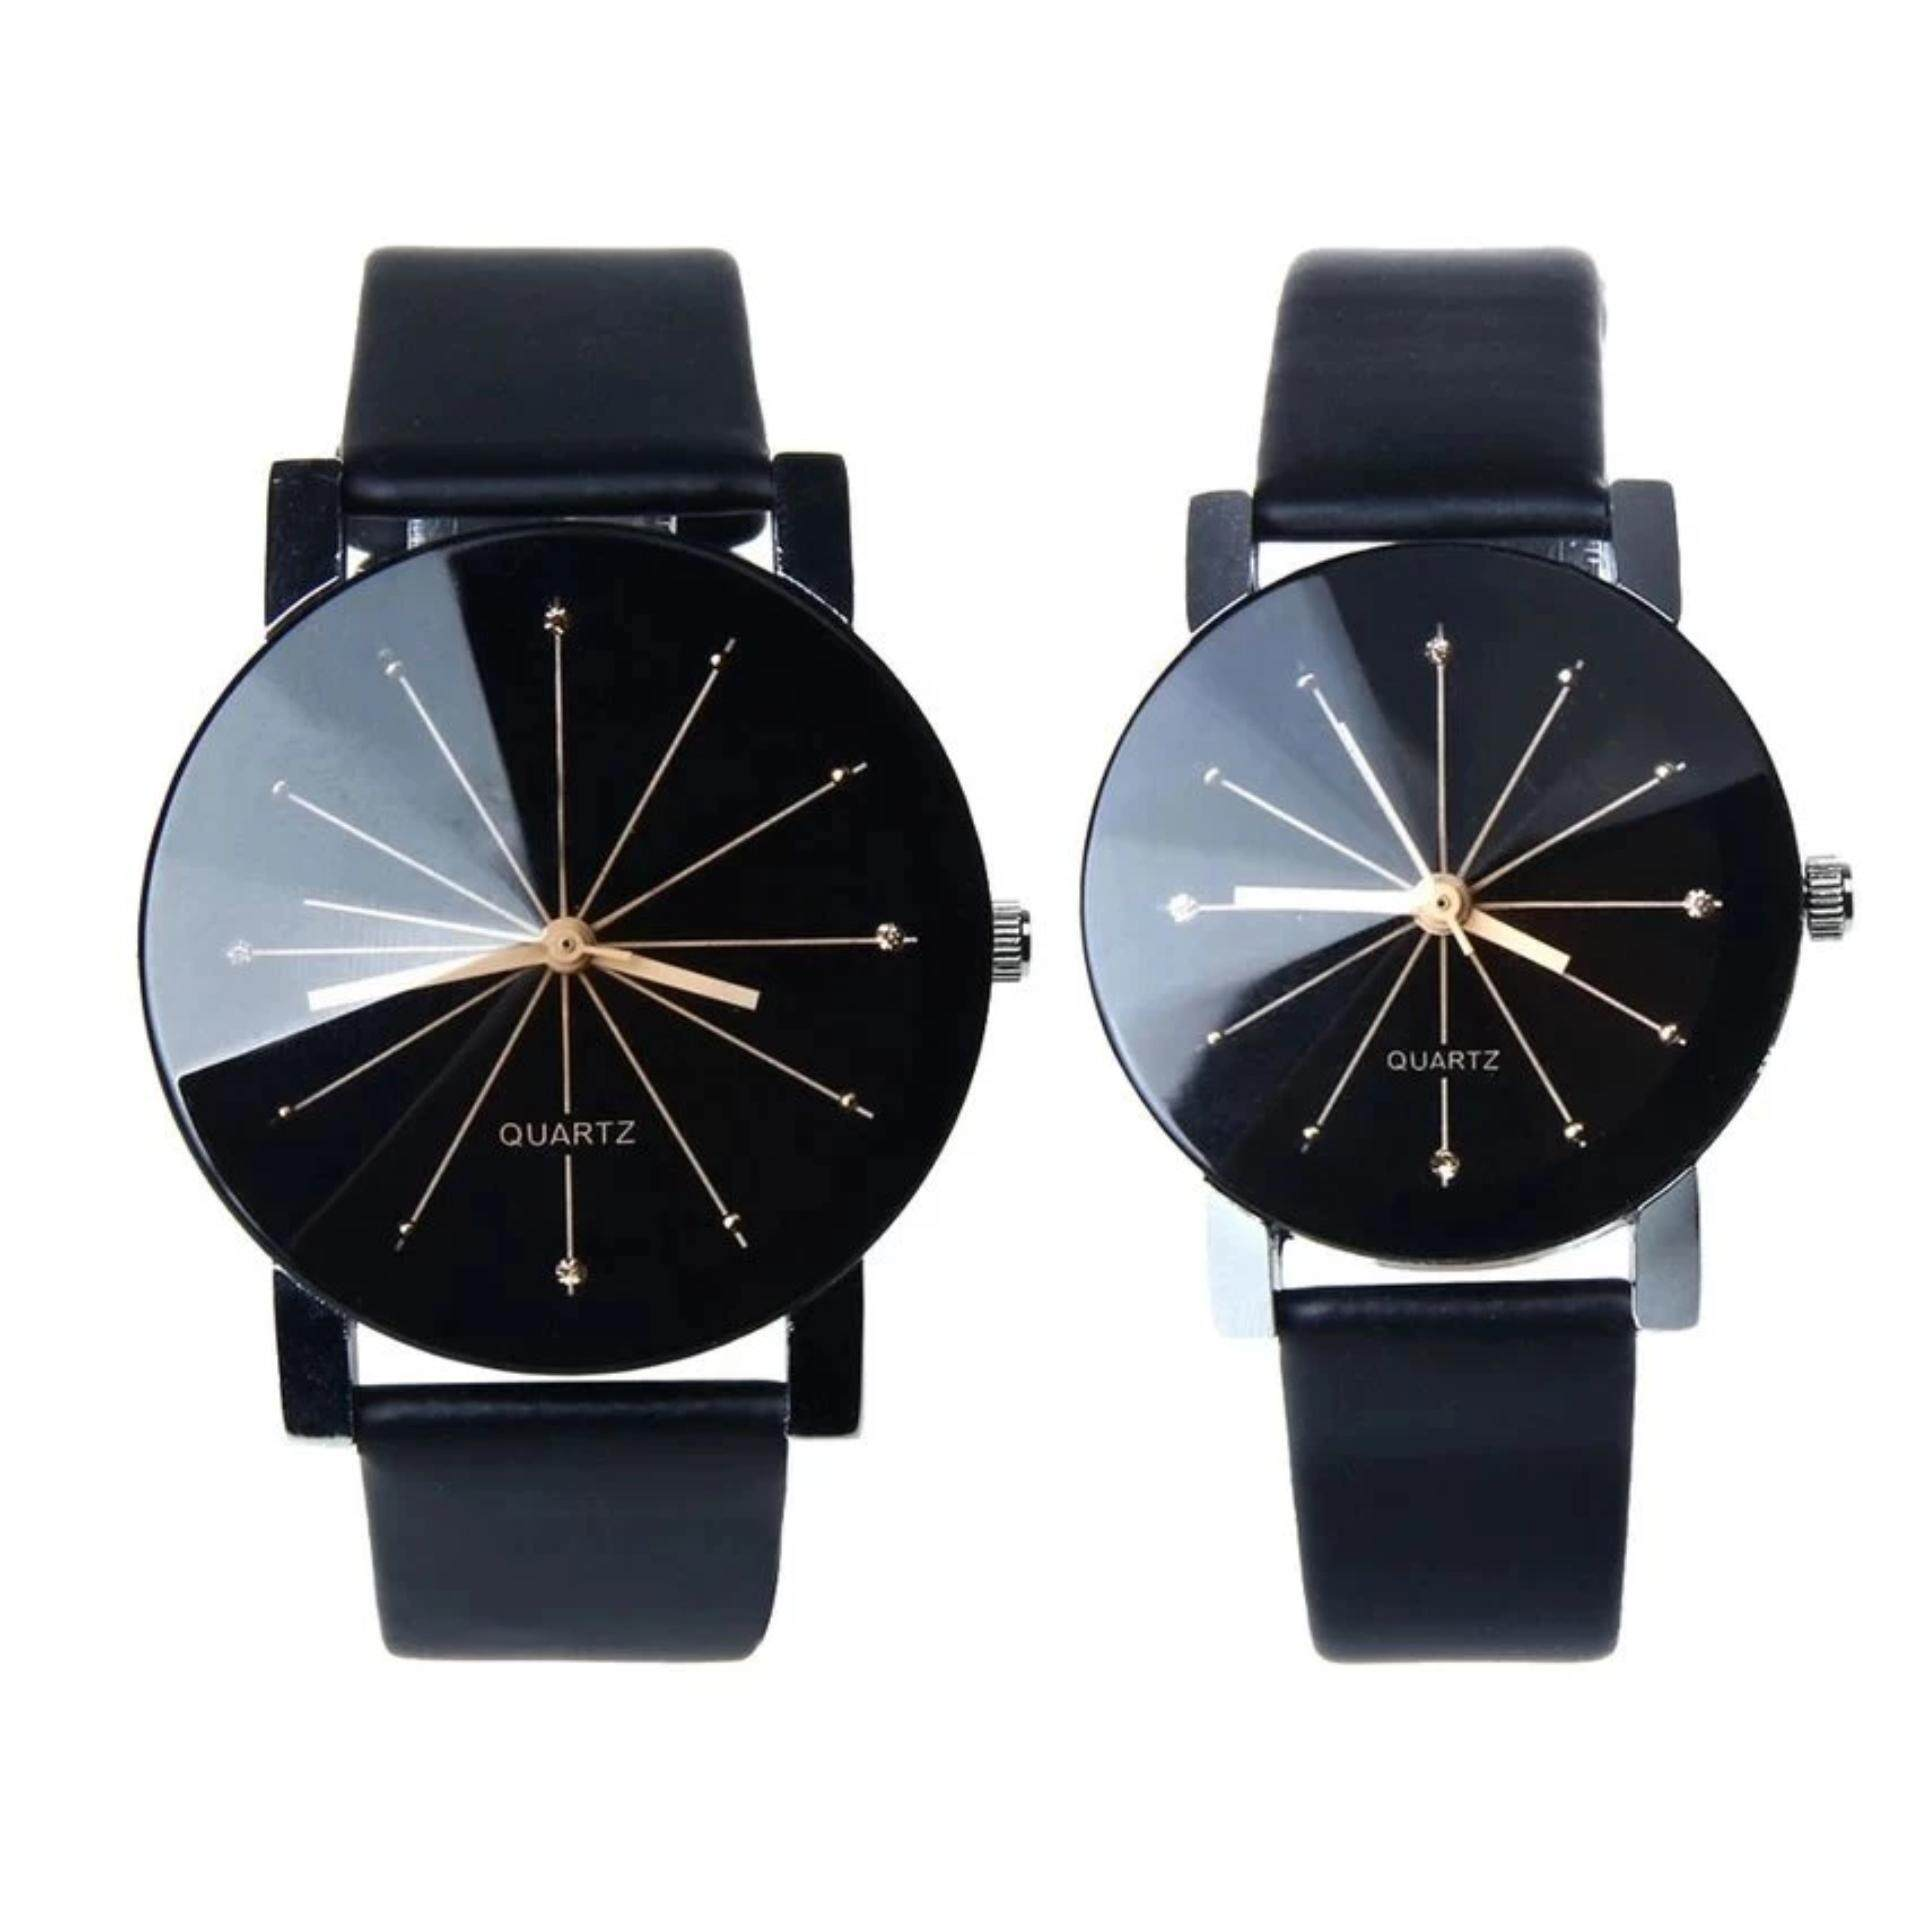 ZB 1 Pair of Couple Wrist Watch Casual PU Leather Round Dial Watchband (Black)